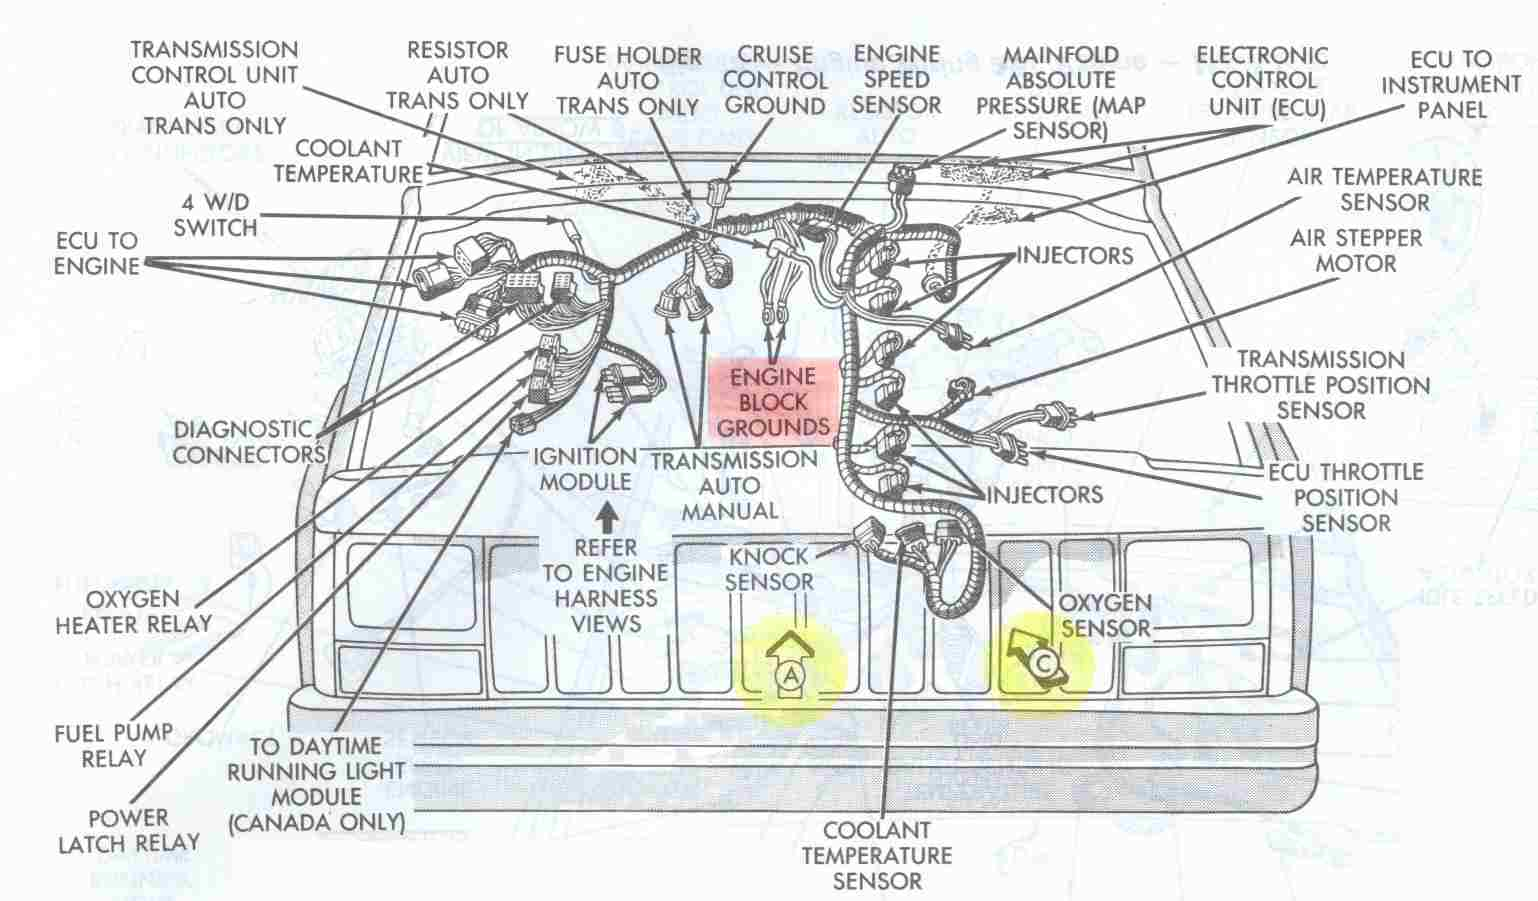 95 Mustang Wiring Harness Library 94 Diagram Jeep Cherokee Electrical Diagnosing Erratic Behavior Of Fan Starter